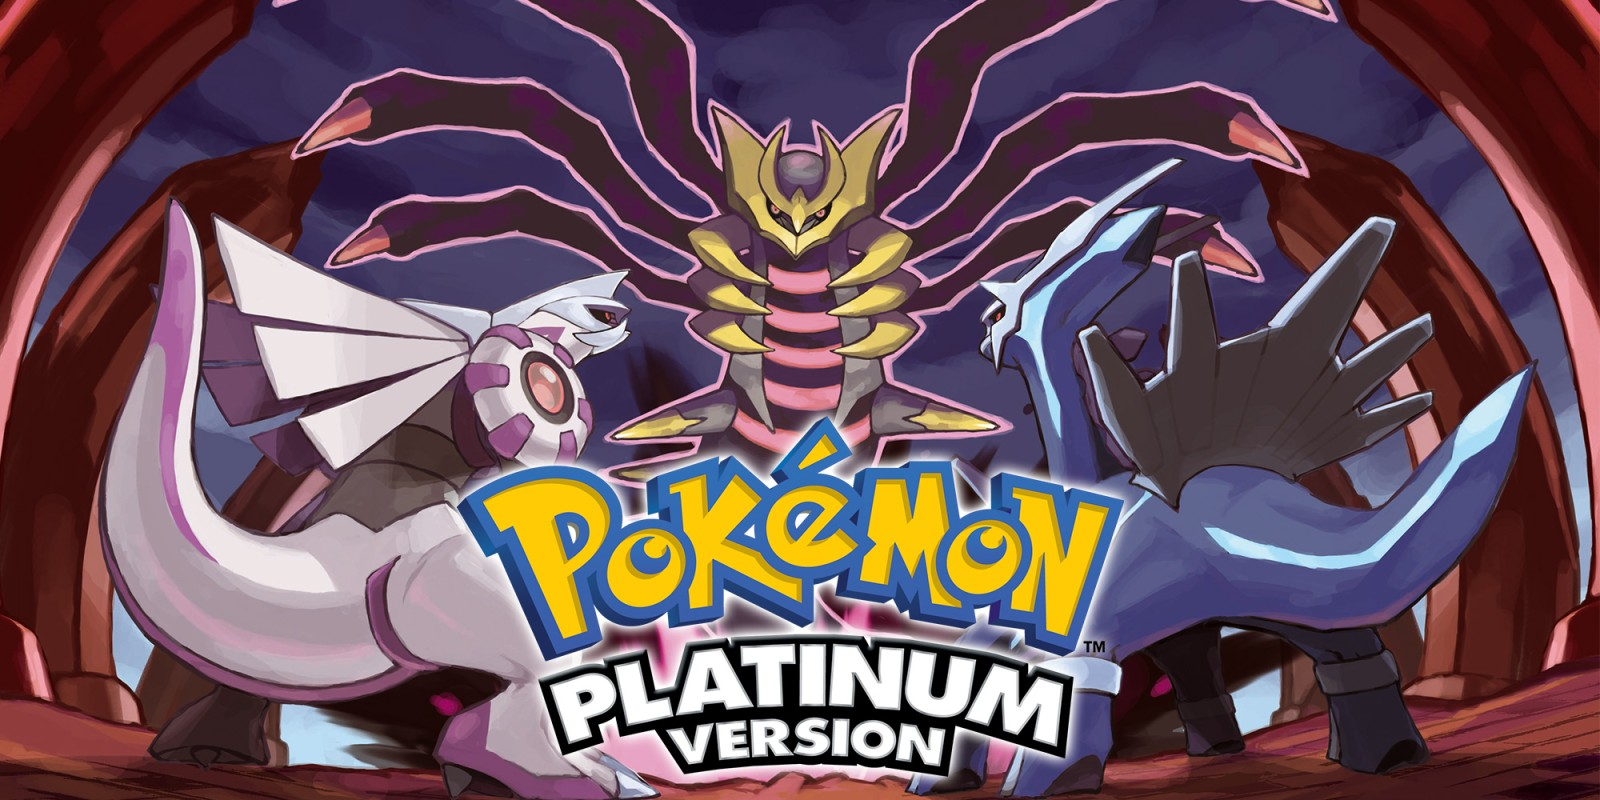 Pokémon Platinum Version